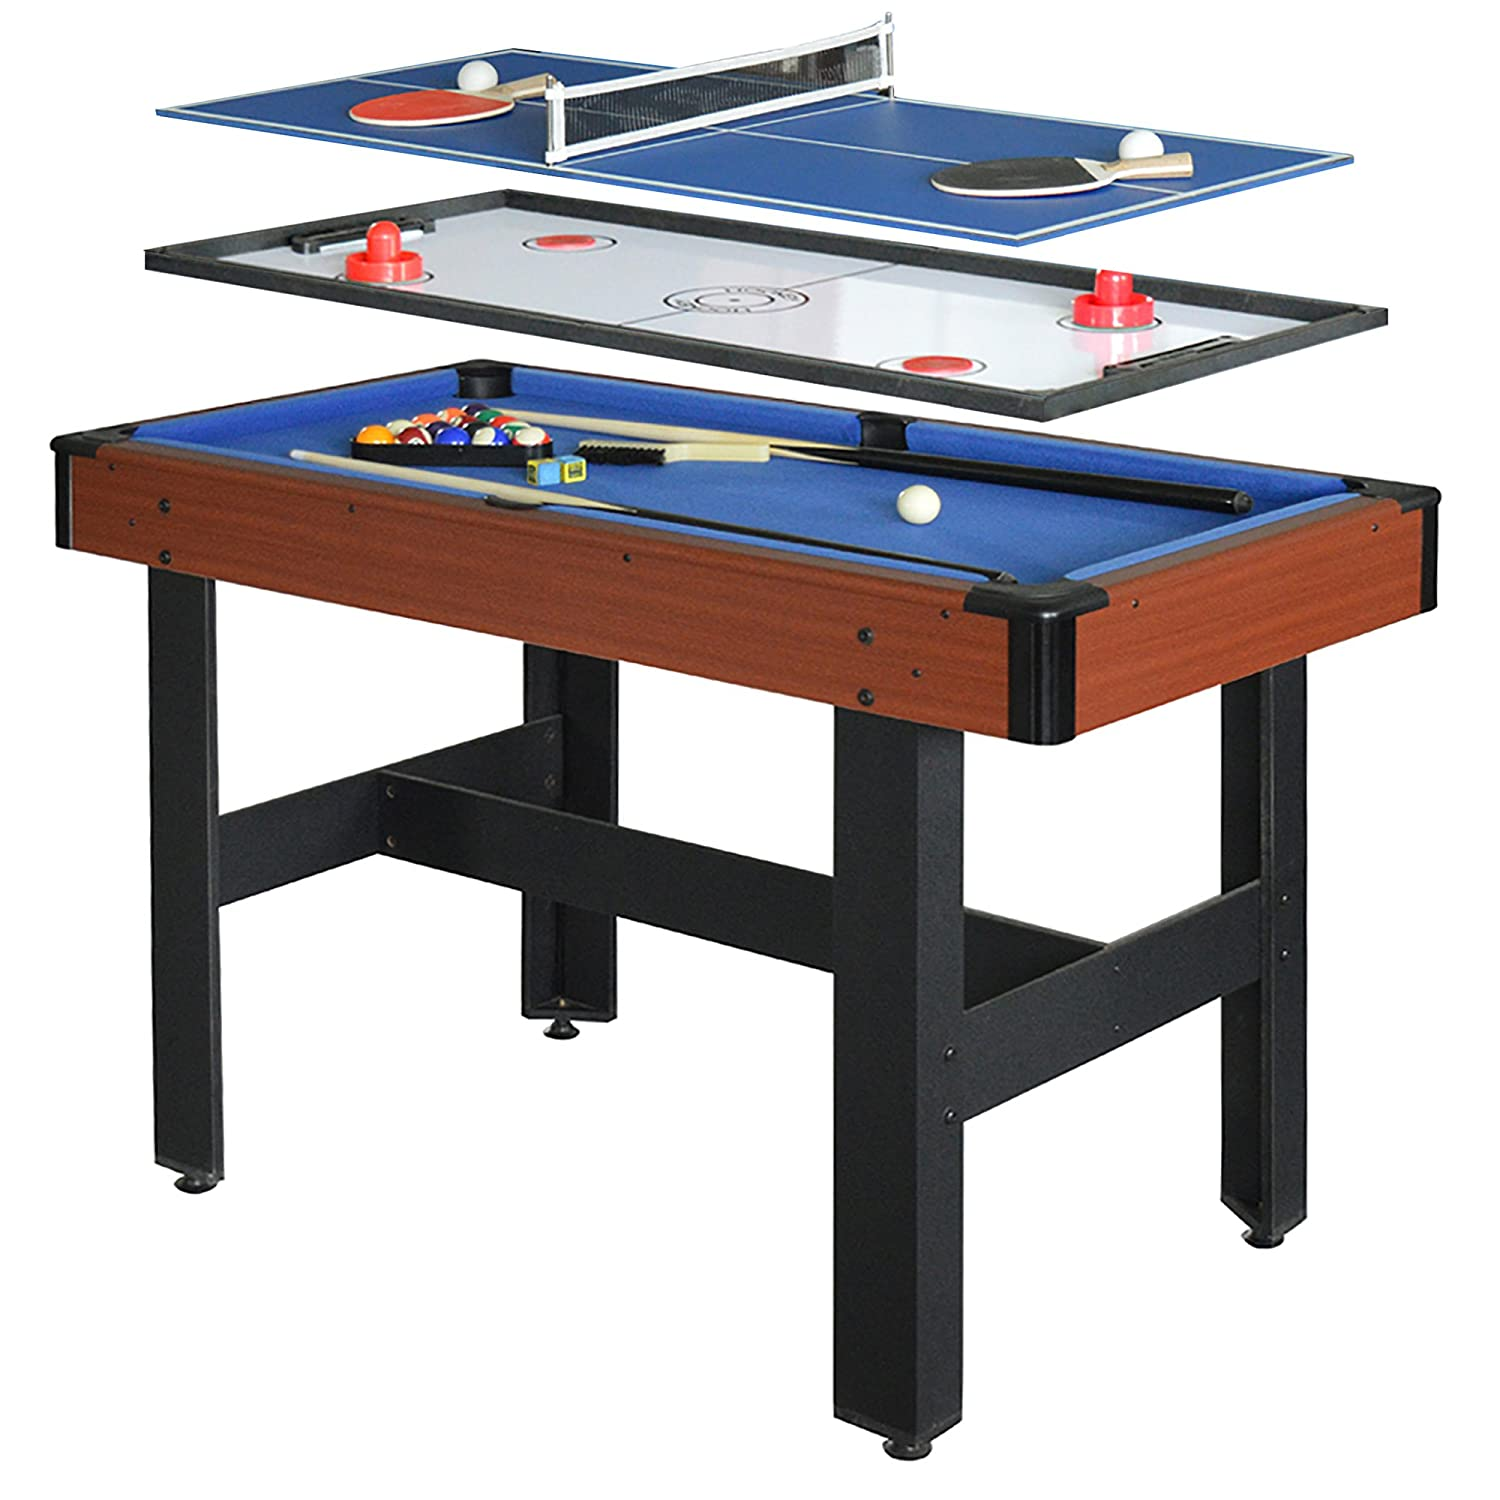 Merveilleux Amazon.com : Hathaway BG1131M Triad 3 In 1 48 In Multi Game Table With  Pool, Glide Hockey, And Table Tennis For Family Game Rooms : Sports U0026  Outdoors